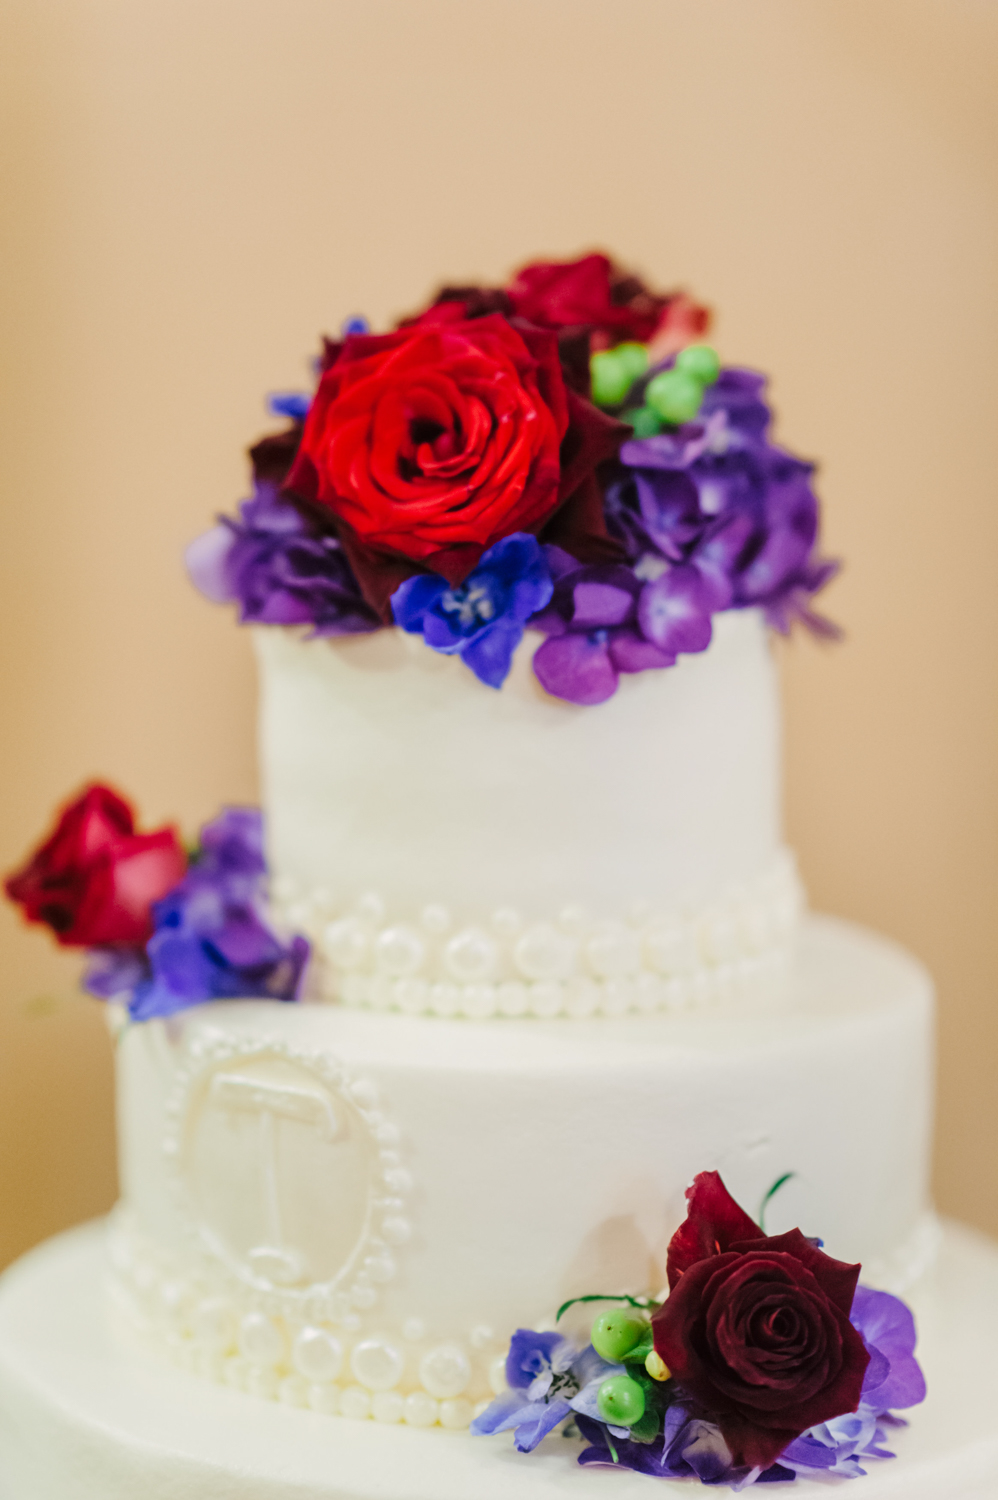 Old Courthouse Wedding Classic Wedding Cake Photography by Andrea Dozier in Dayton, Ohio